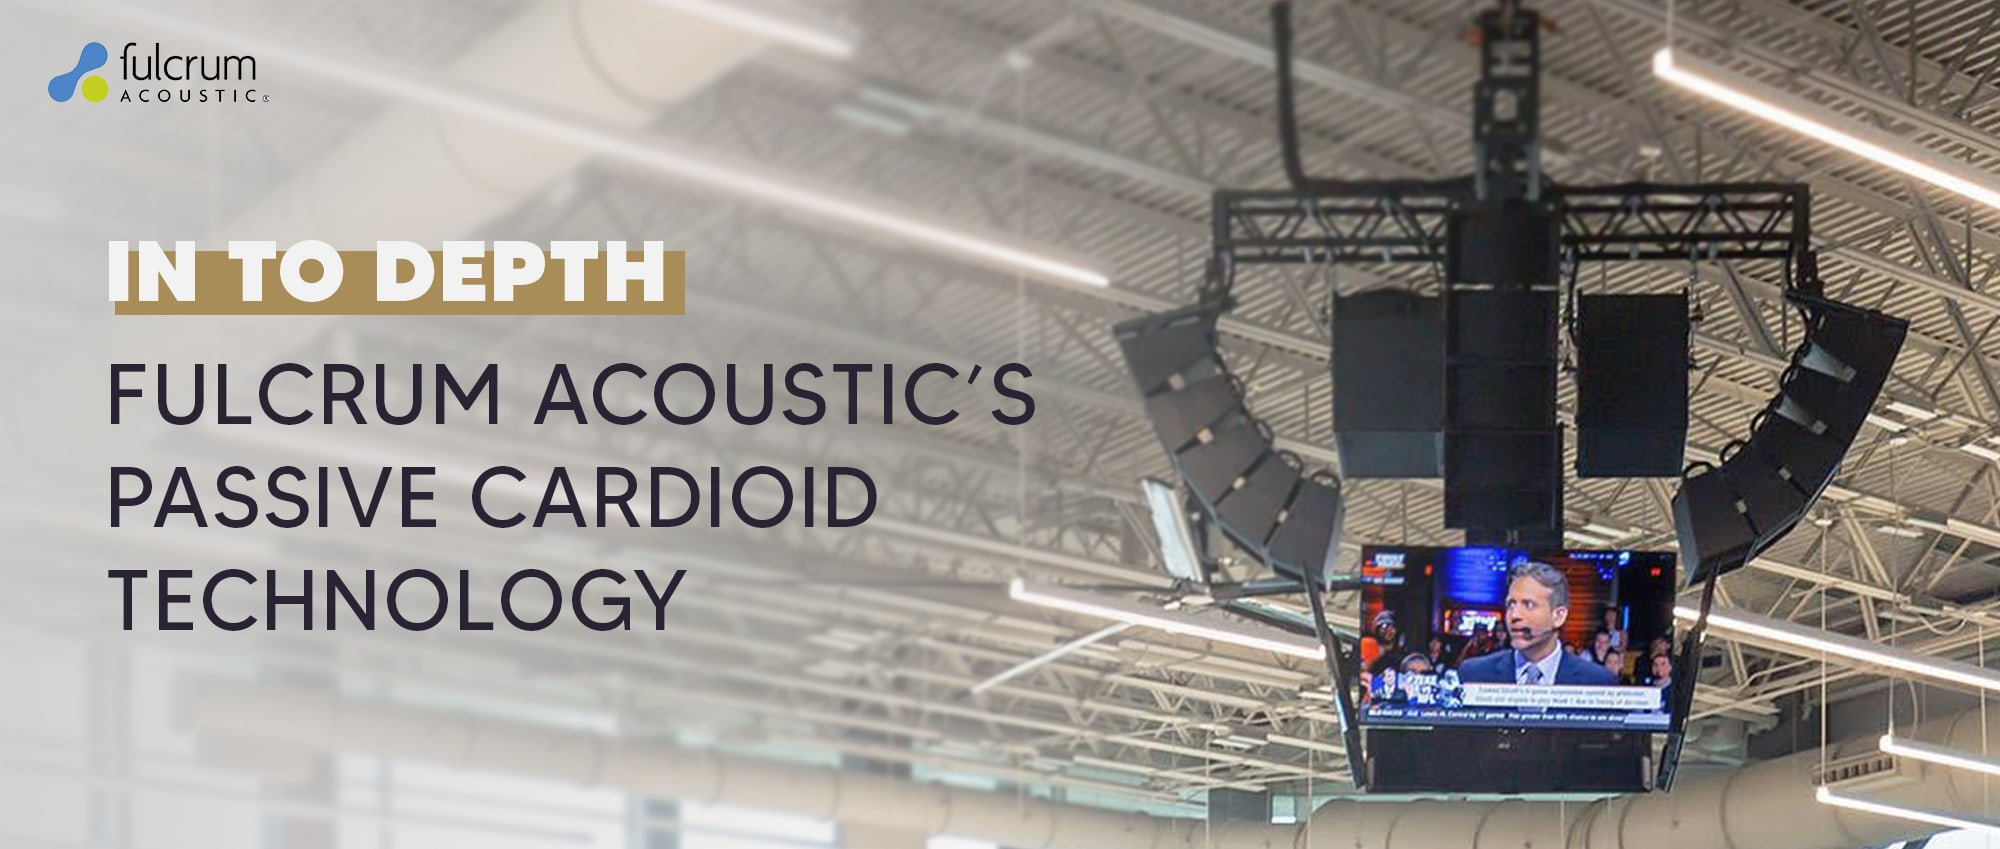 In To Depth: Fulcrum Acoustic And Its Passive Cardioid Technology™ 1